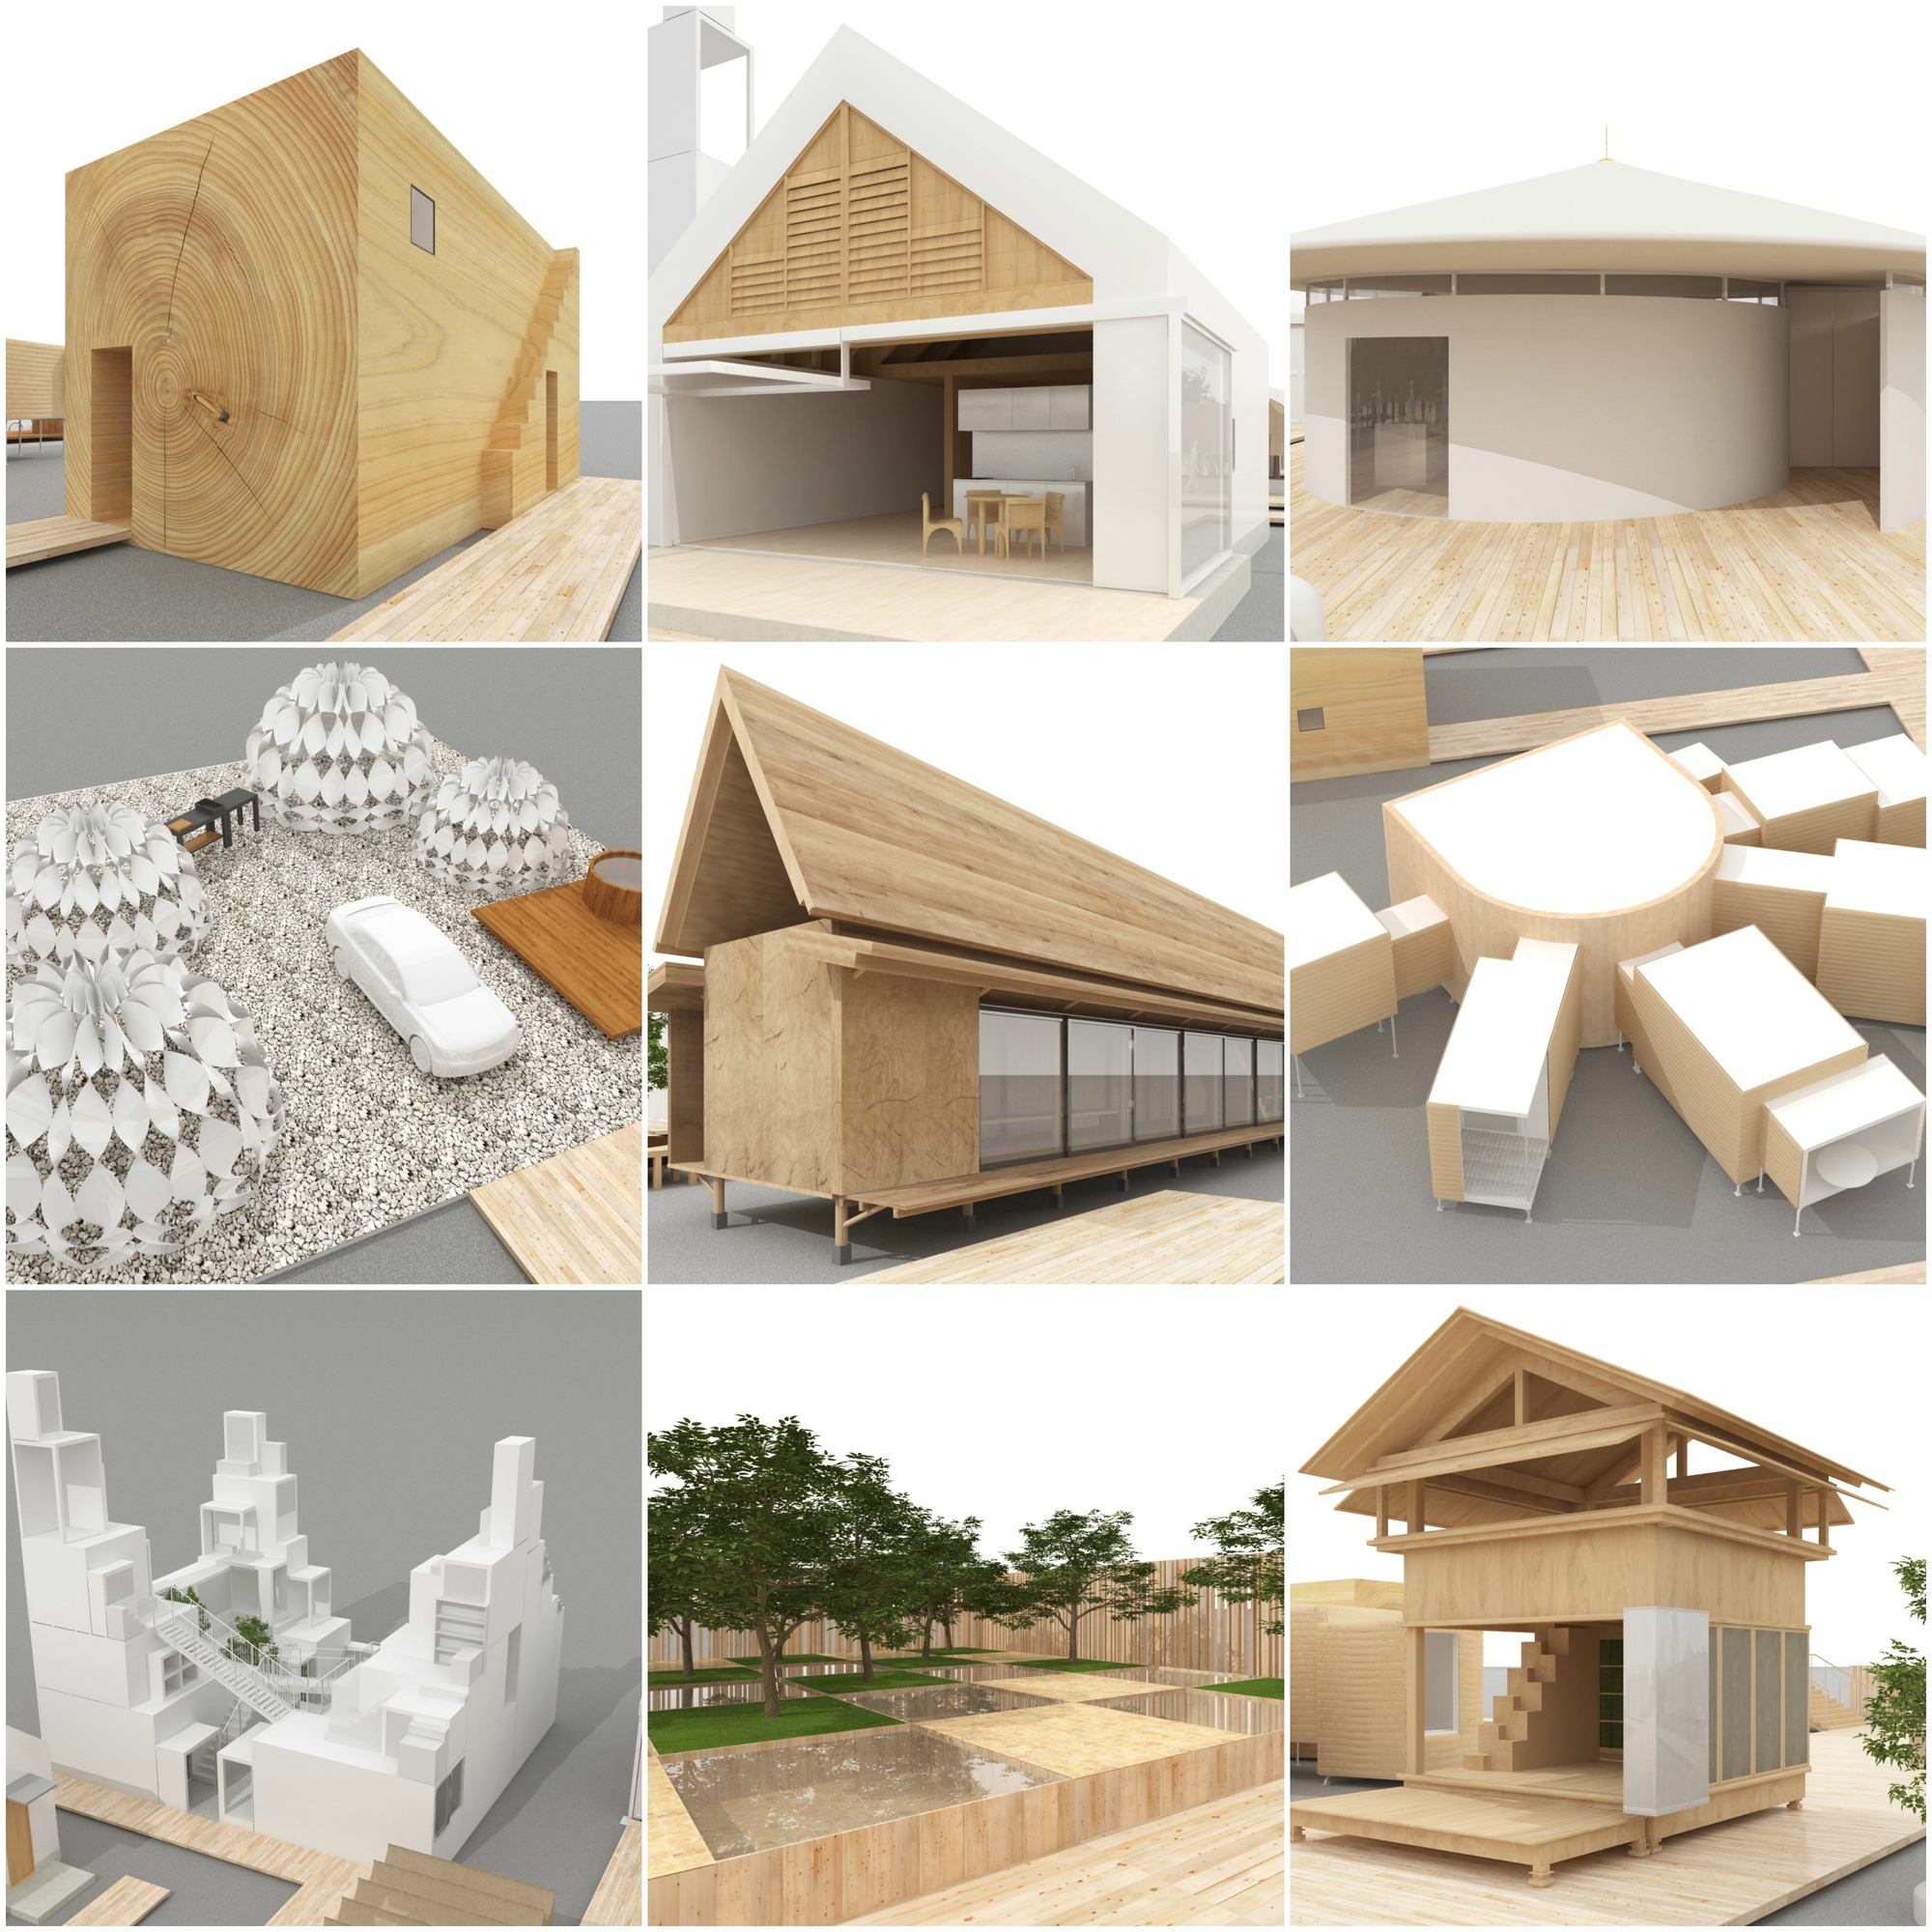 HOUSE VISION Tokyo Returns for Summer 2016 to Exhibit 12 Home Ideas